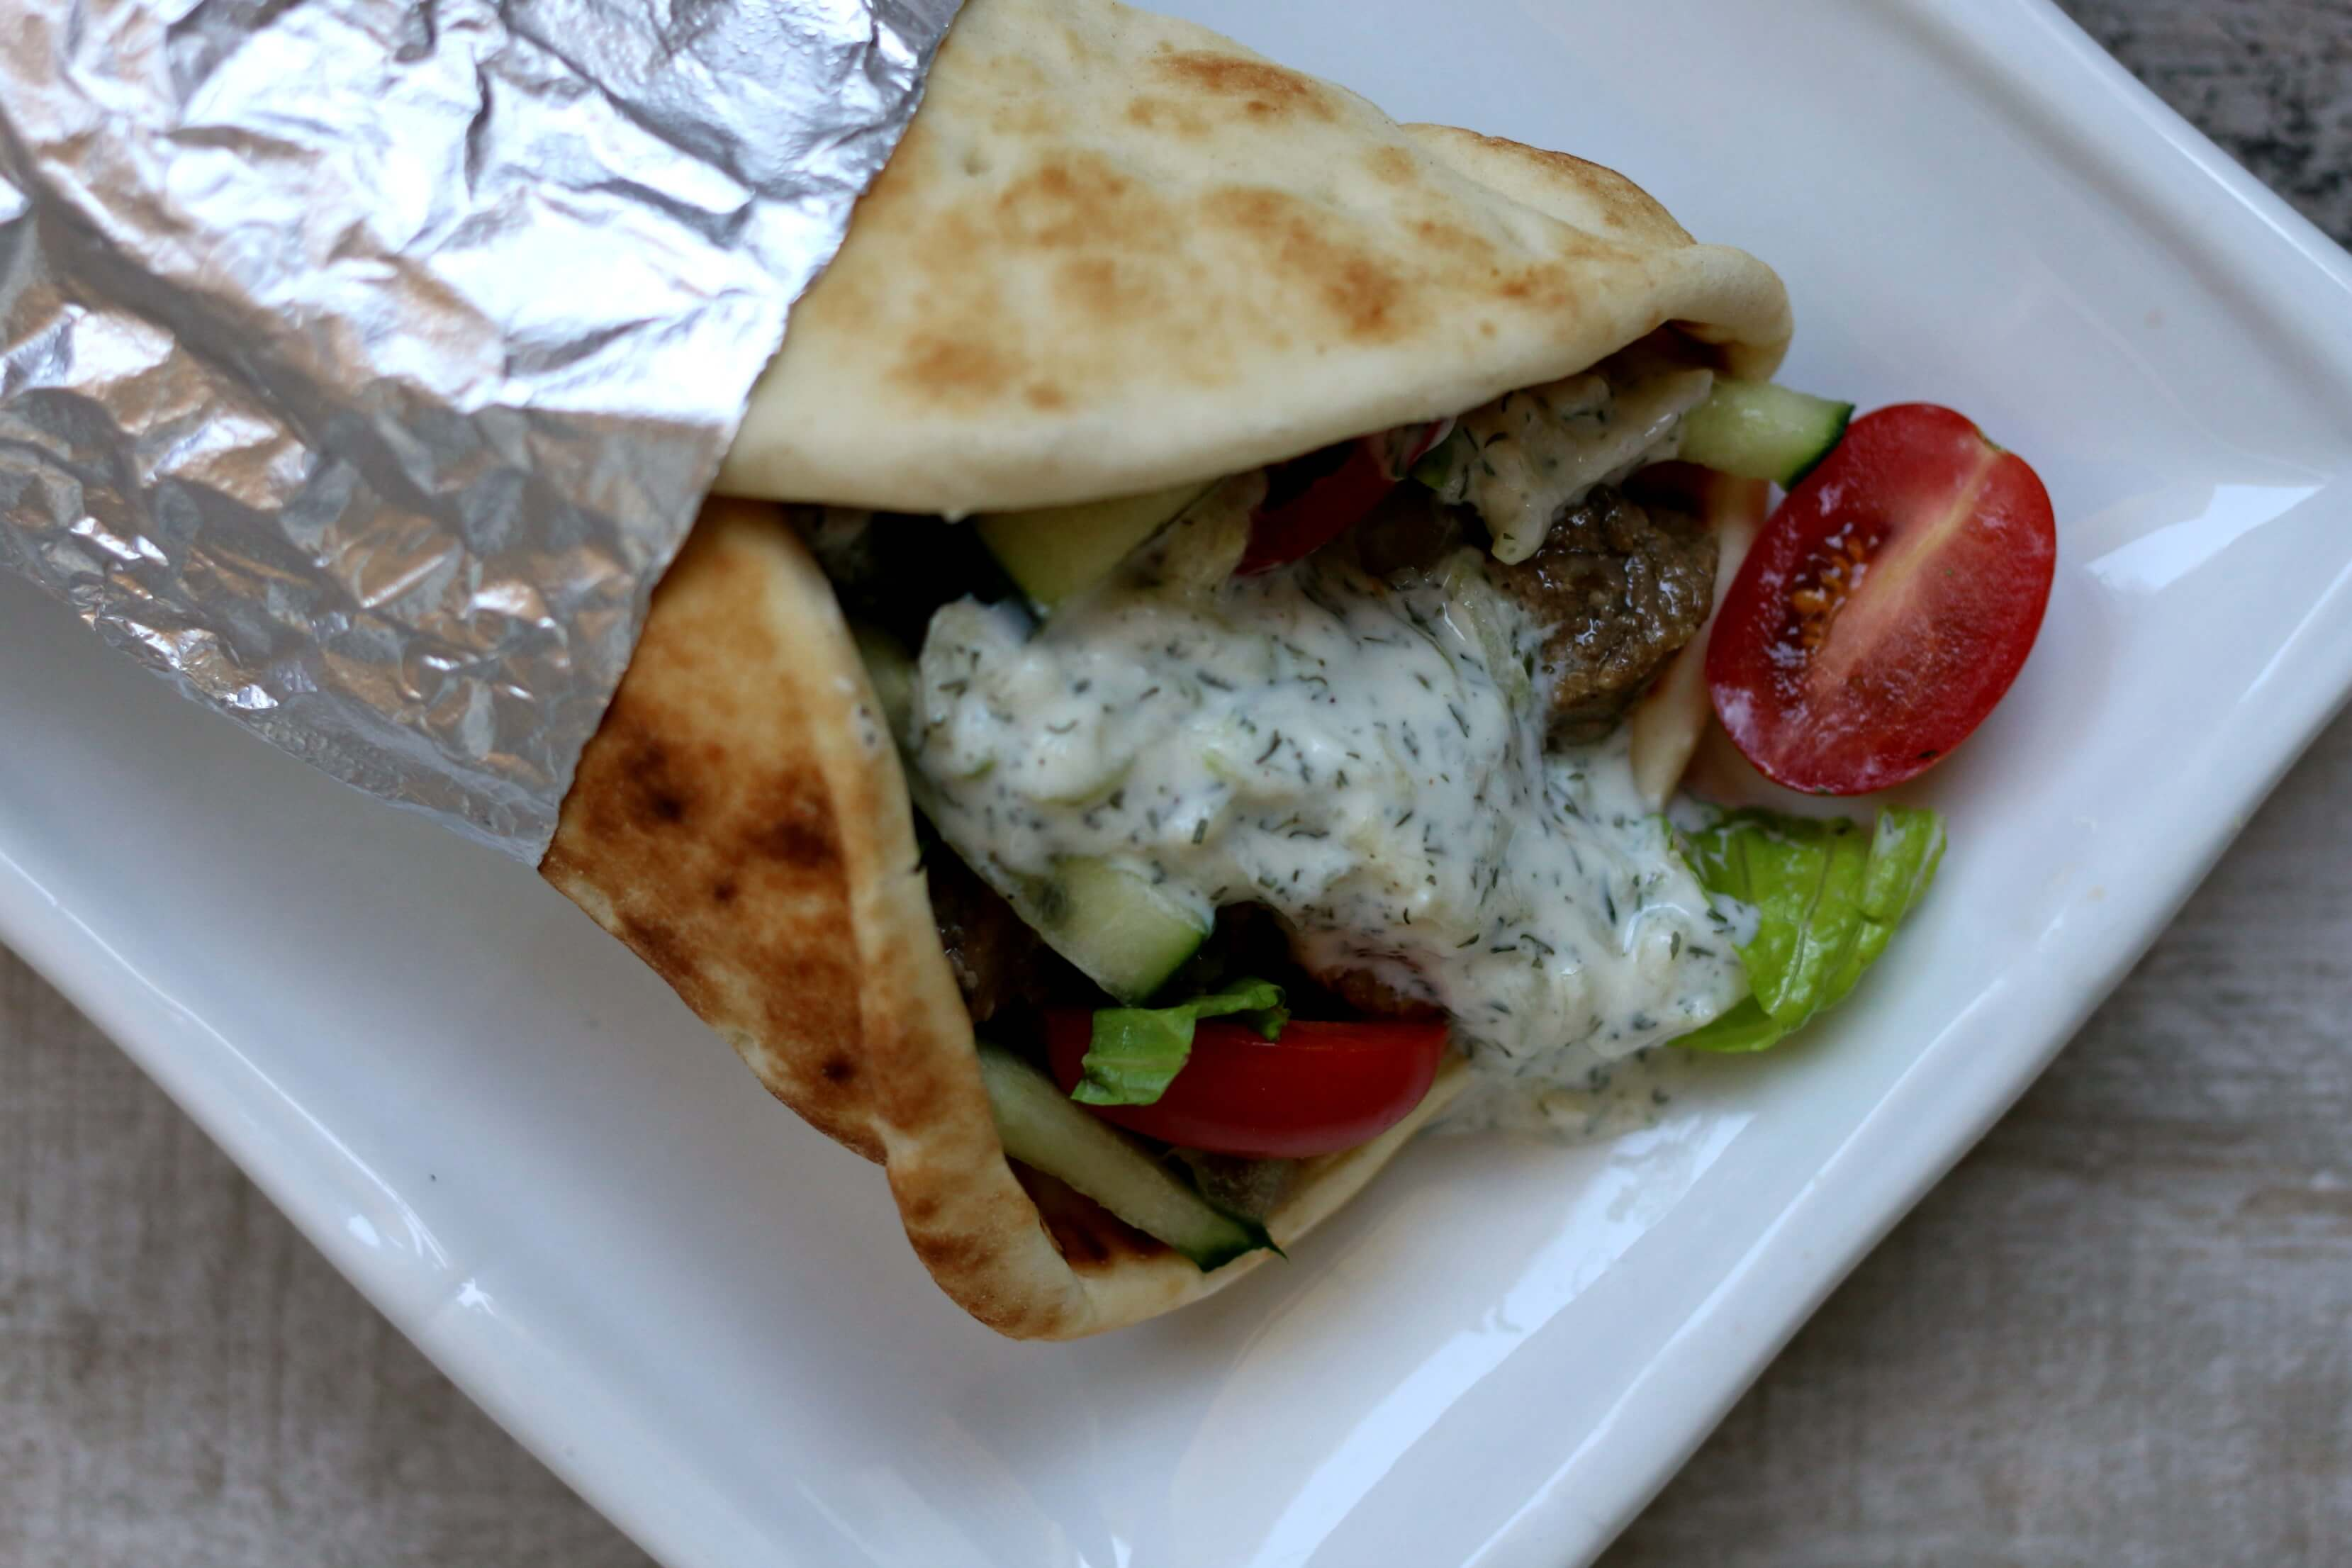 Slow Cooker Beef Gyros Recipe: Tender pieces of beef with soft onions, juicy tomatoes, crisp lettuce, creamy cucumber yogurt sauce all wrapped up in soft, melt in your mouth pita bread. And the best part of this recipe is that the beef is made in the slow cooker freeing up your time and making your kitchen smell good all day long.